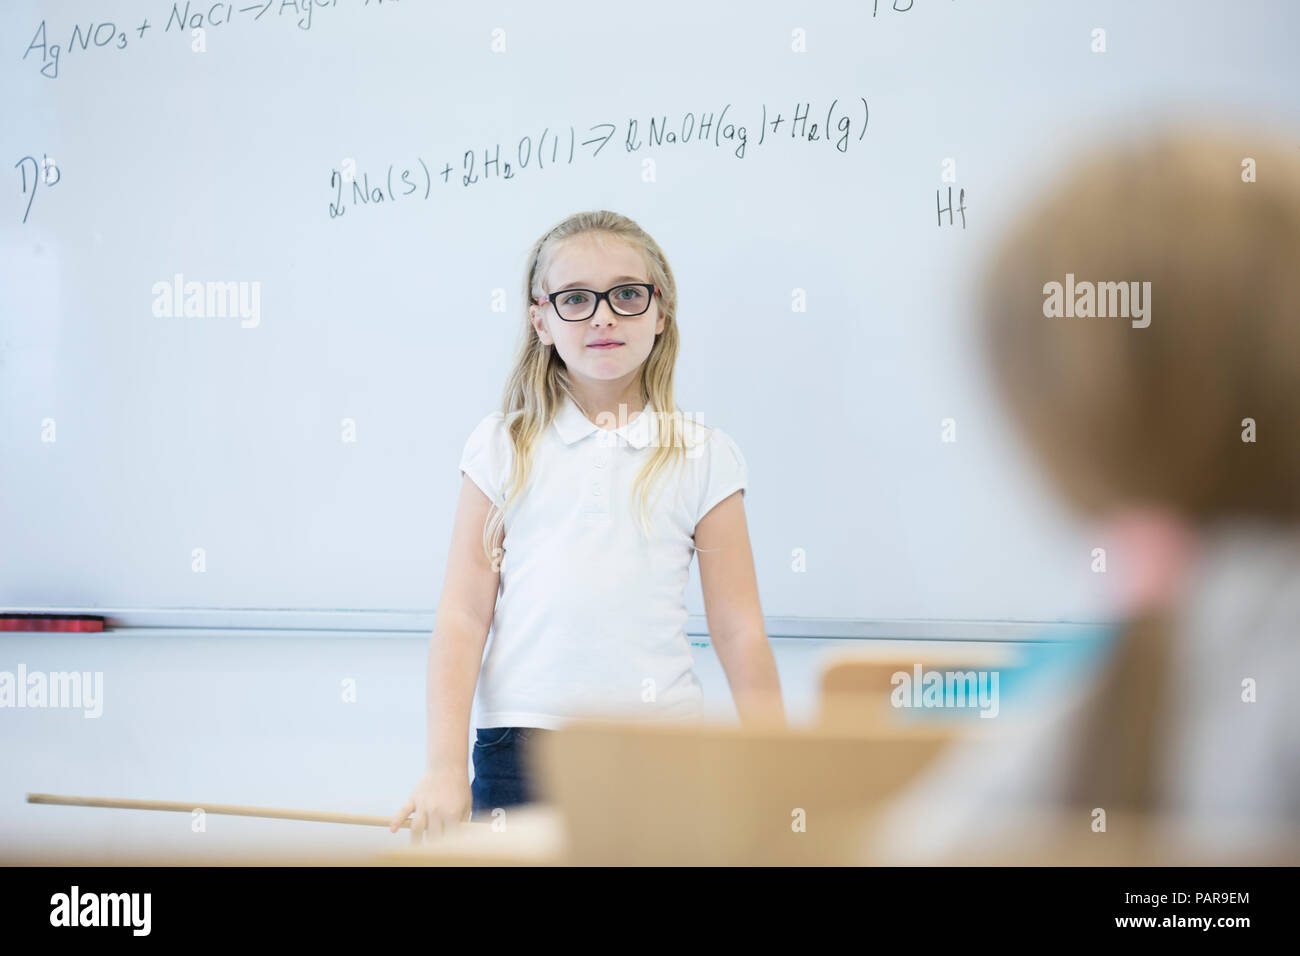 Schoolgirl standing at whiteboard with formula in class - Stock Image